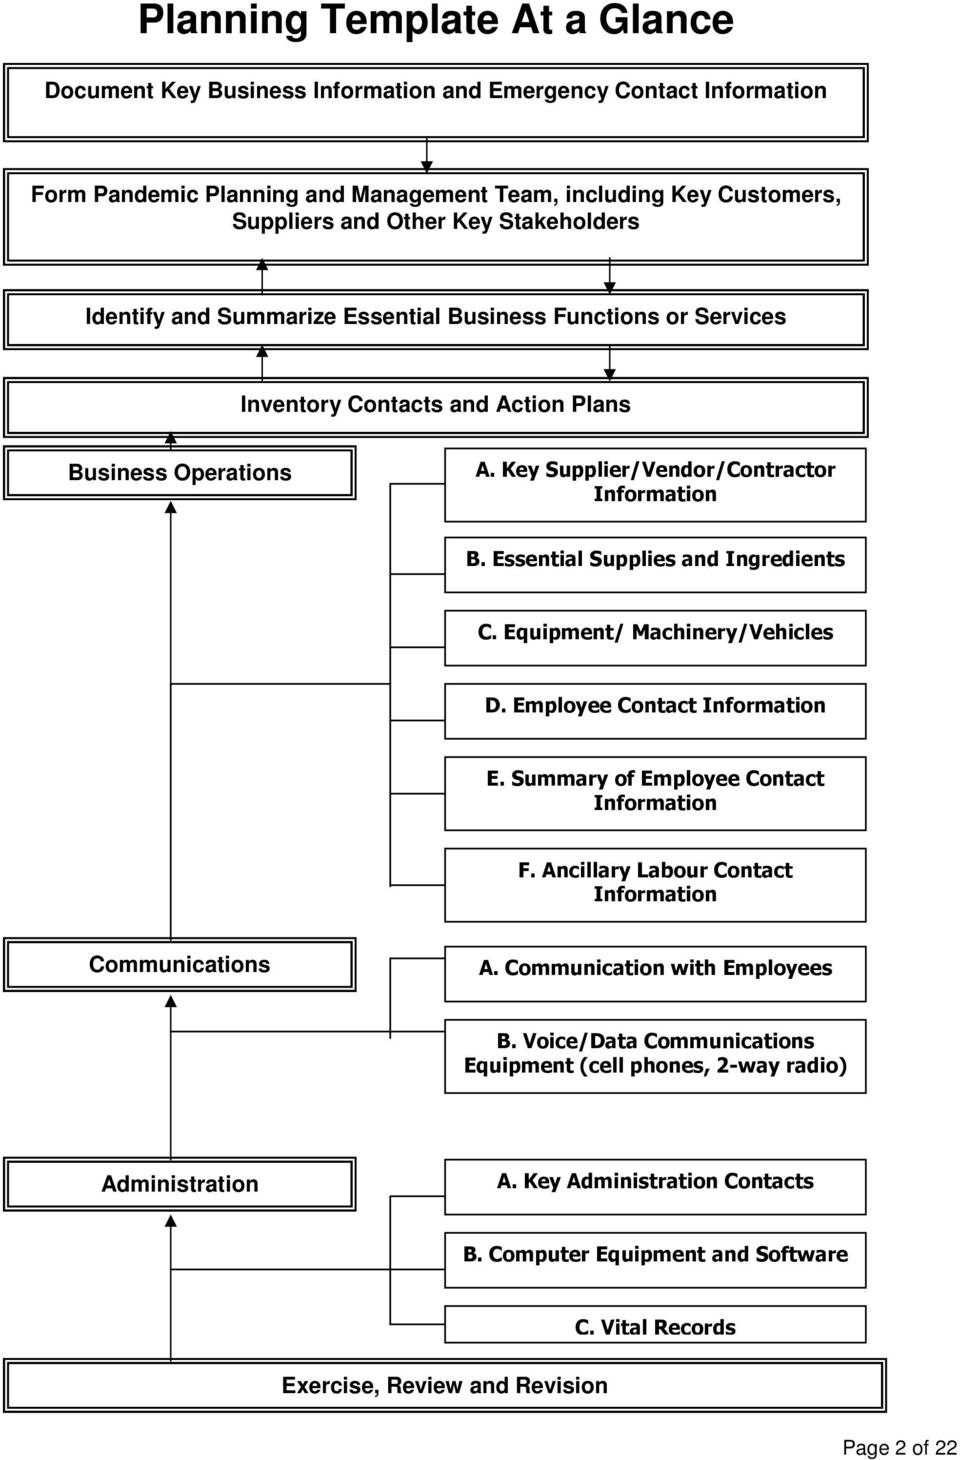 Identify and Summarize Essential Business Functions or Services Inventory Contacts and Action Plans